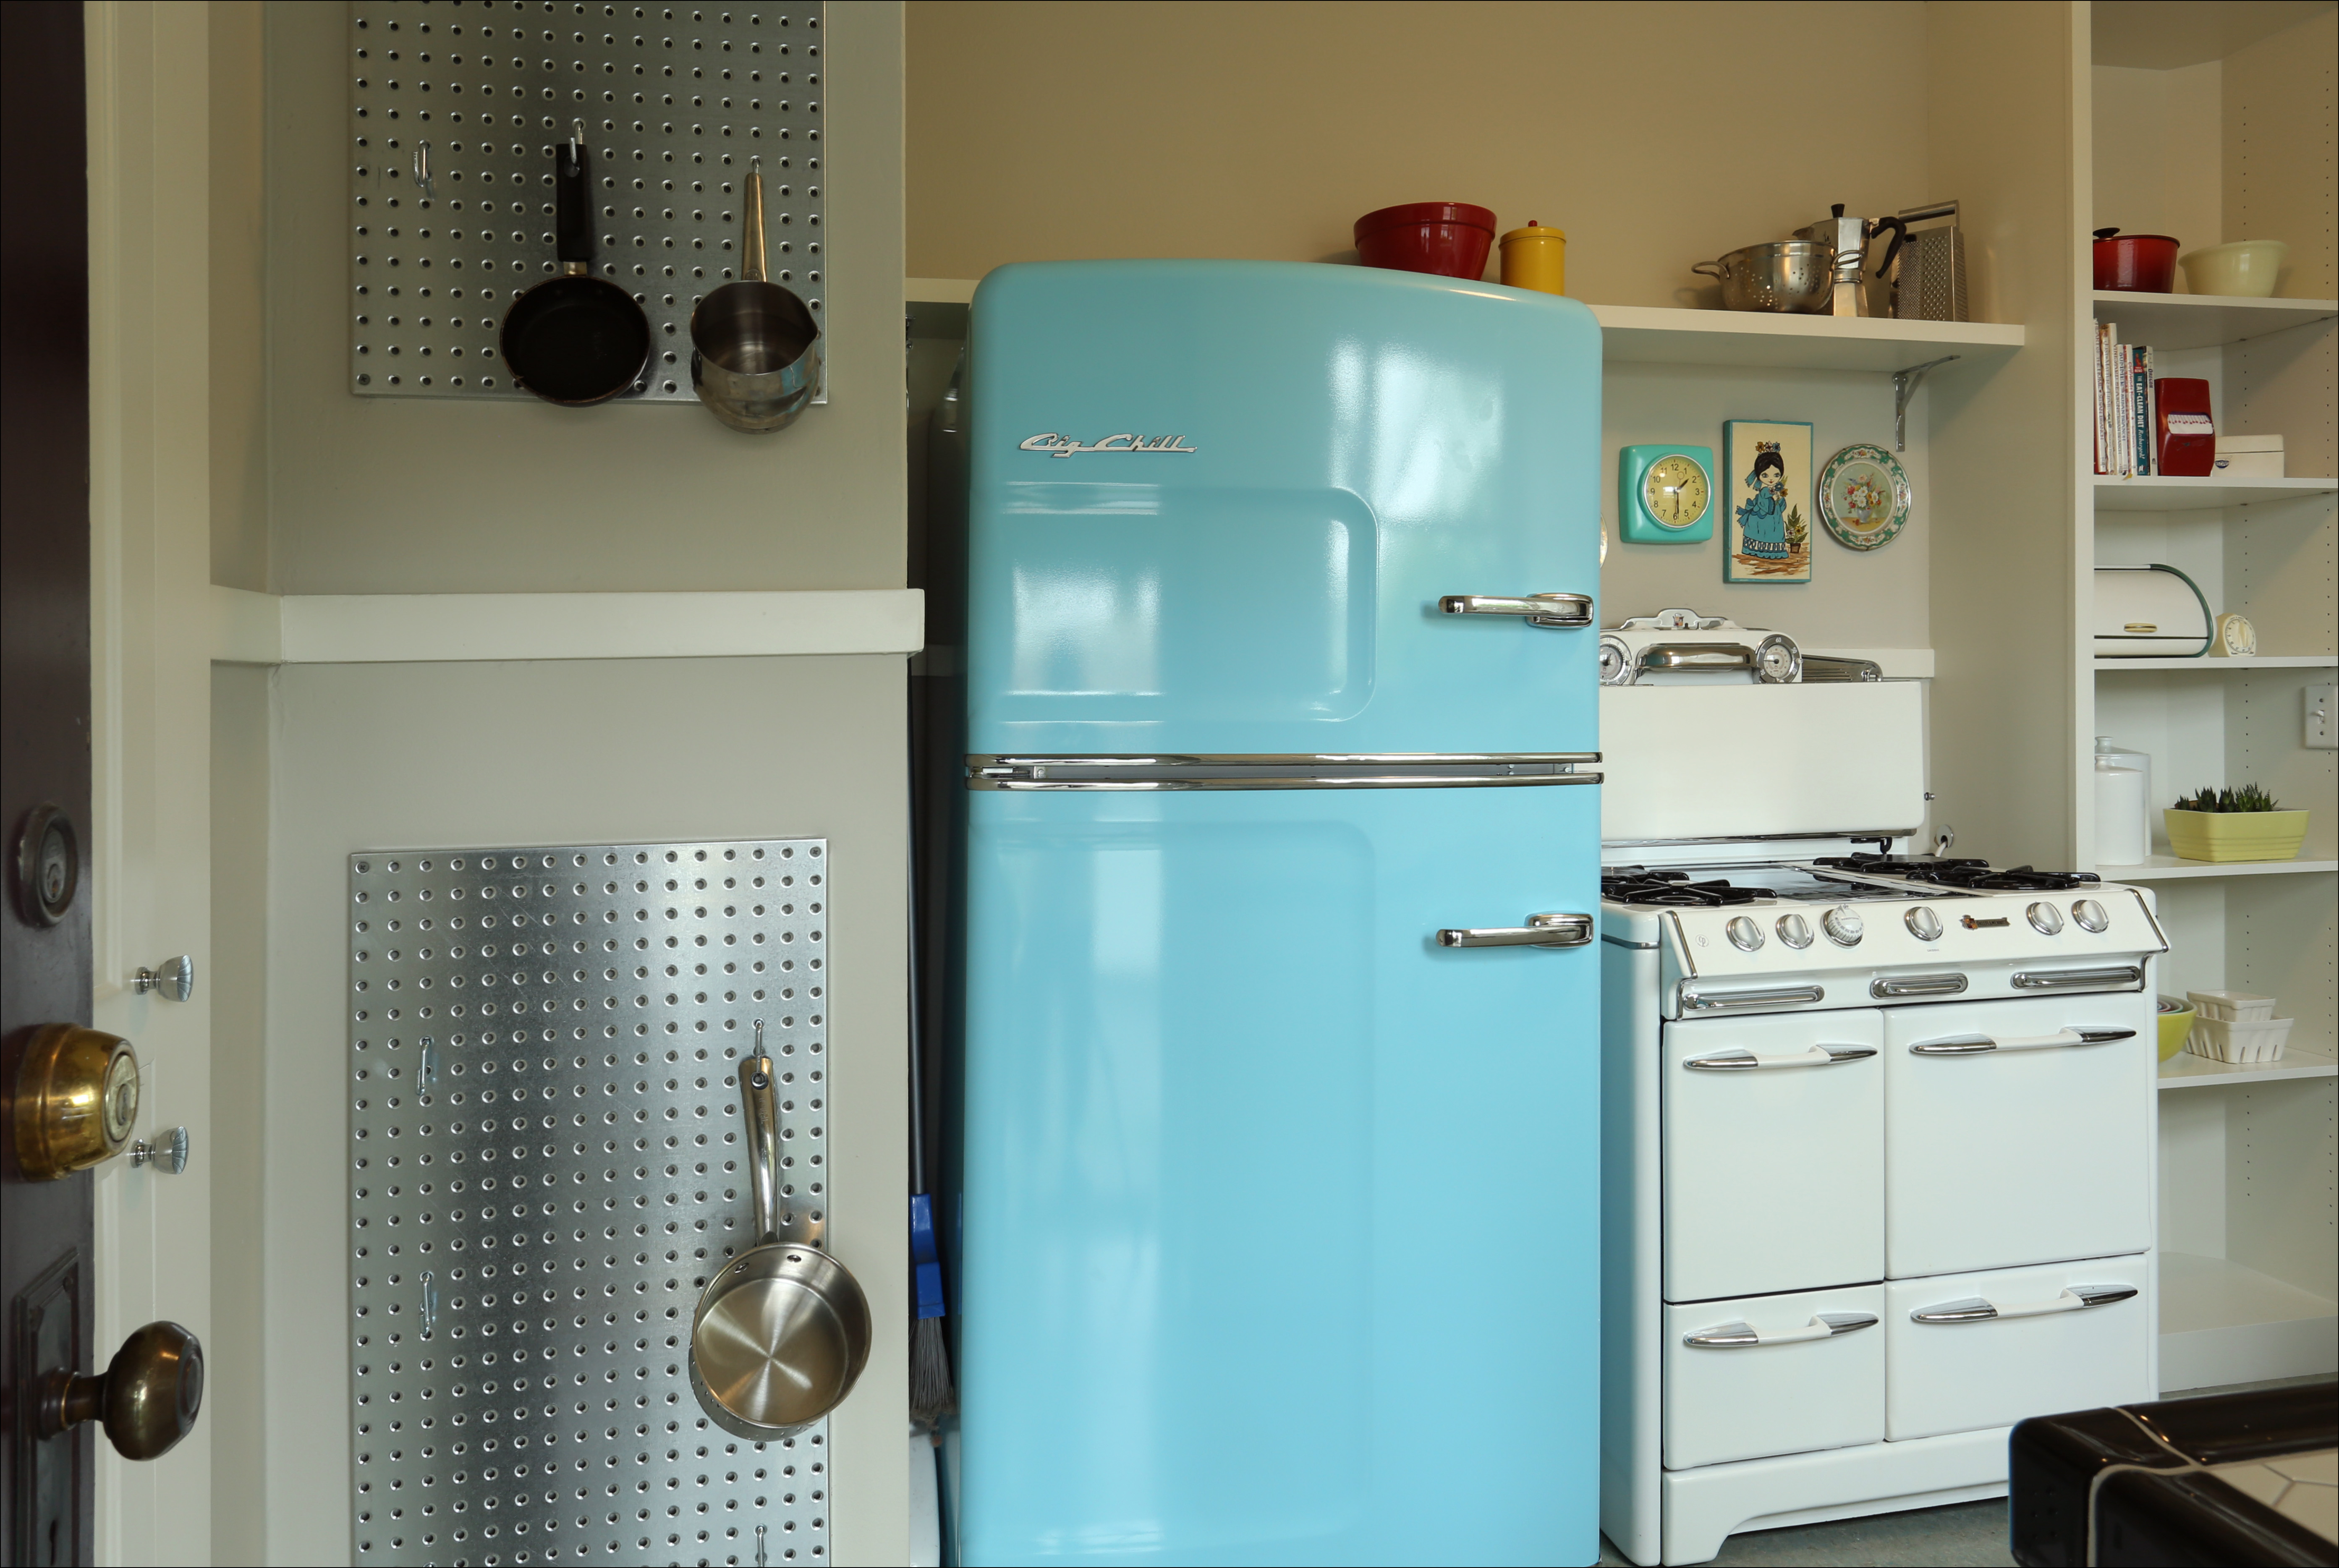 This 1931 era appropriate kitchen features a big chill refrigerator design by kristyn bester